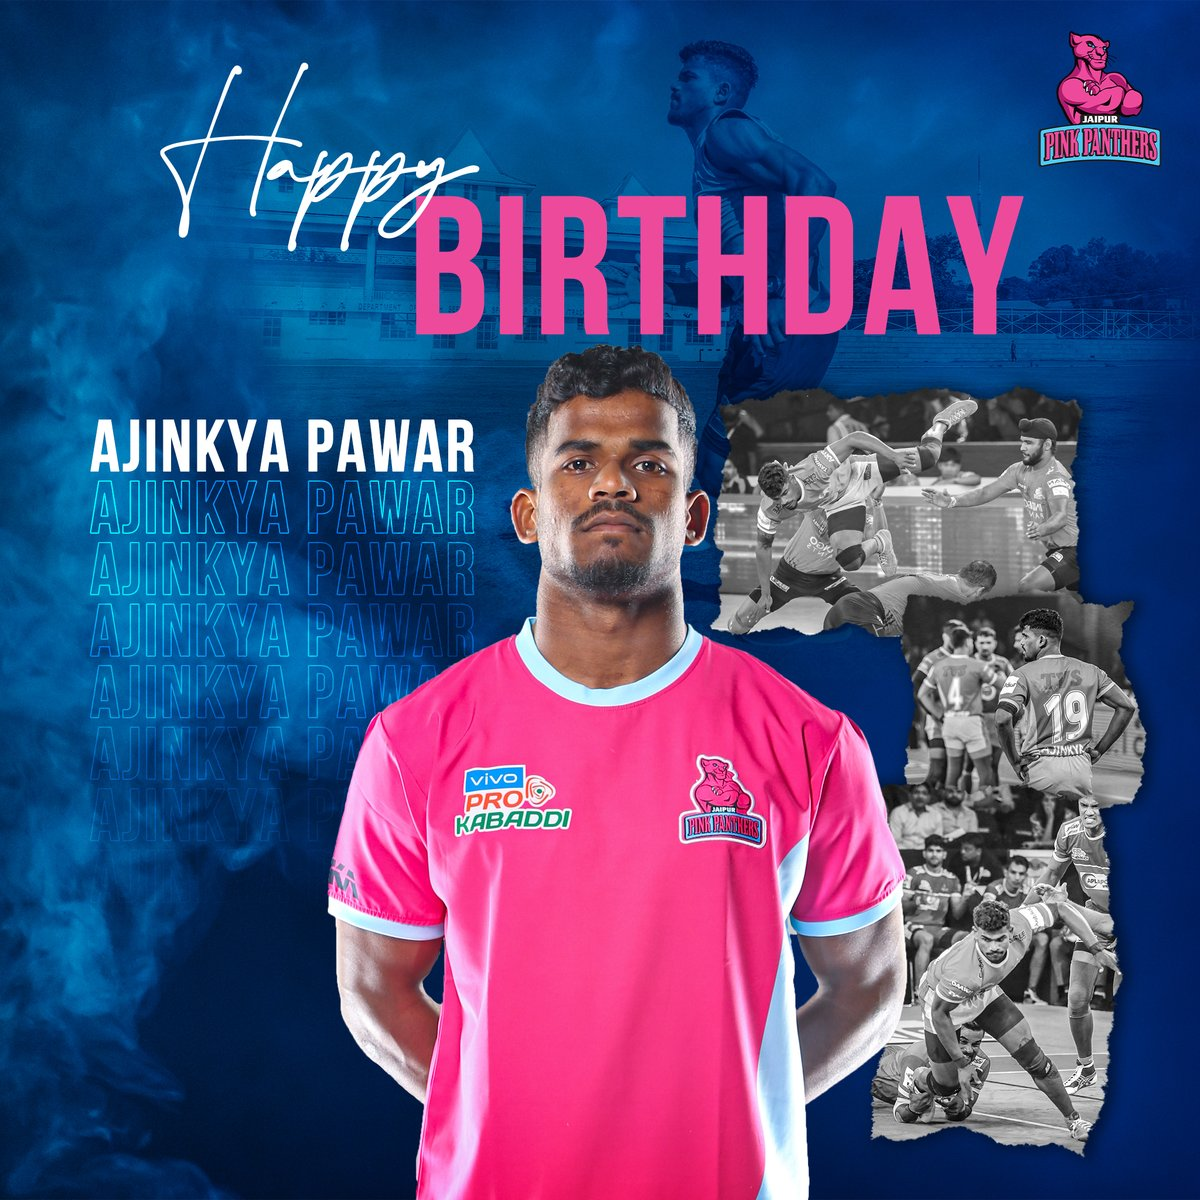 Wishing you a day filled with happiness and a year filled with joy. Have a wonderful time and a very happy birthday Ajinkya Pawar! 🎂  #HappyBirthday #PantherSquad #JaiHanuman #TopCats #JaipurPinkPanthers #JPP #Jaipur #vivoprokabaddi